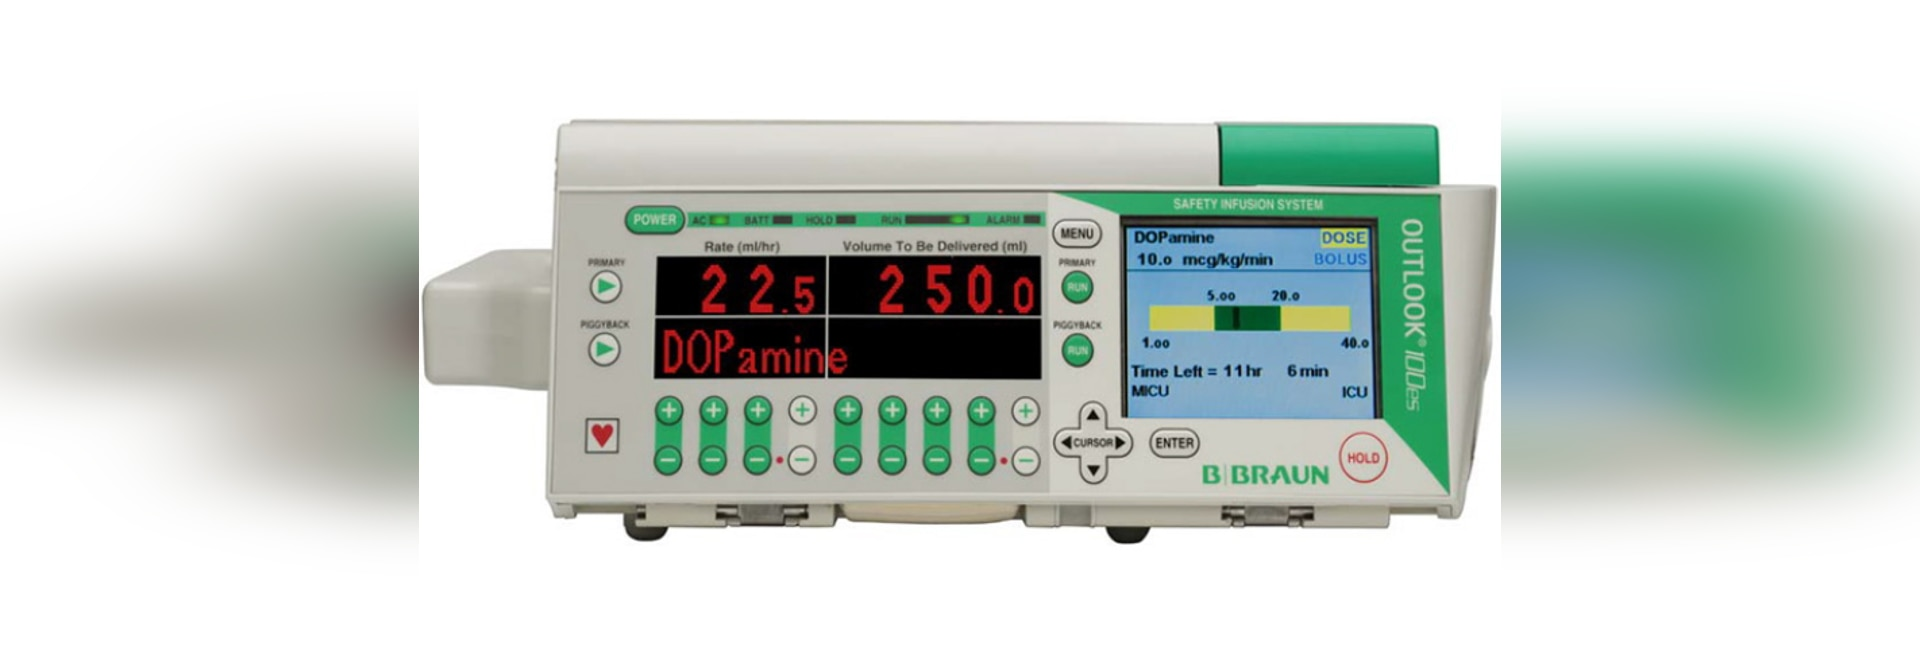 B. Braun Infusion Pumps with Nebulizers Get FDA Emergency Authorization for COVID-19